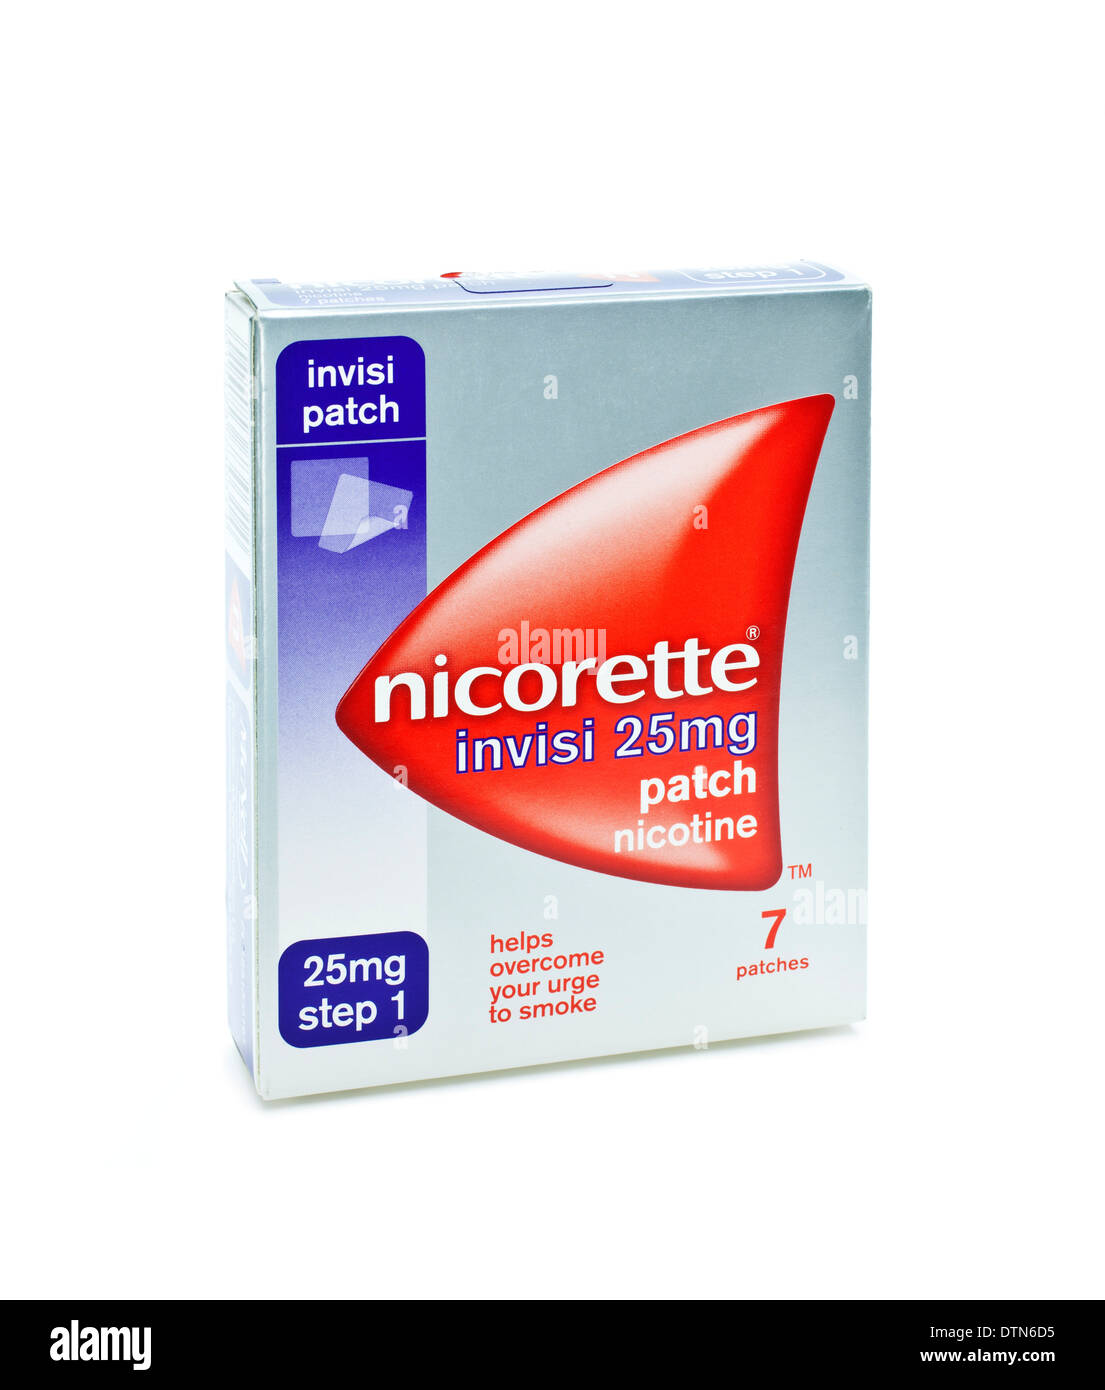 Box of 7 Nicorette patches on a white background - Stock Image